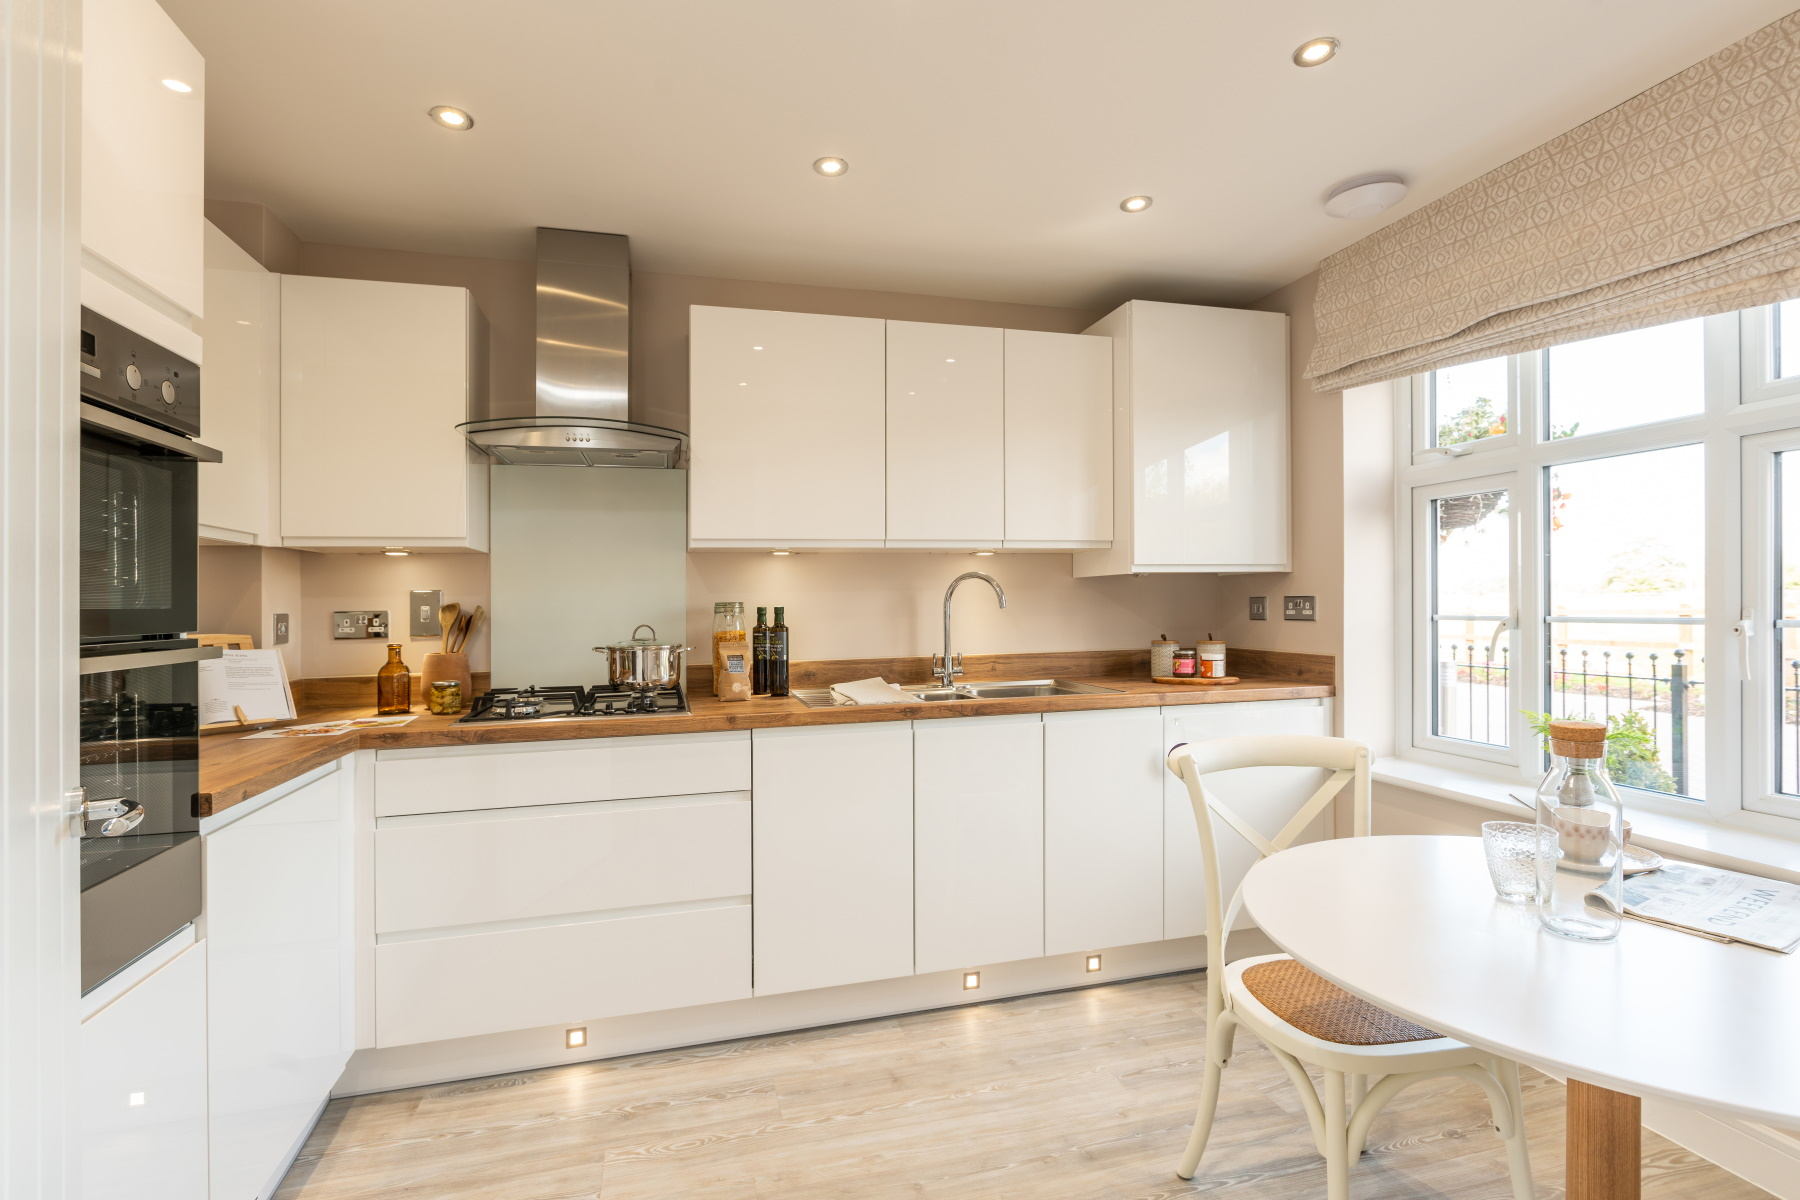 TW Exeter - Plumb Park - Withycome example kitchen 2